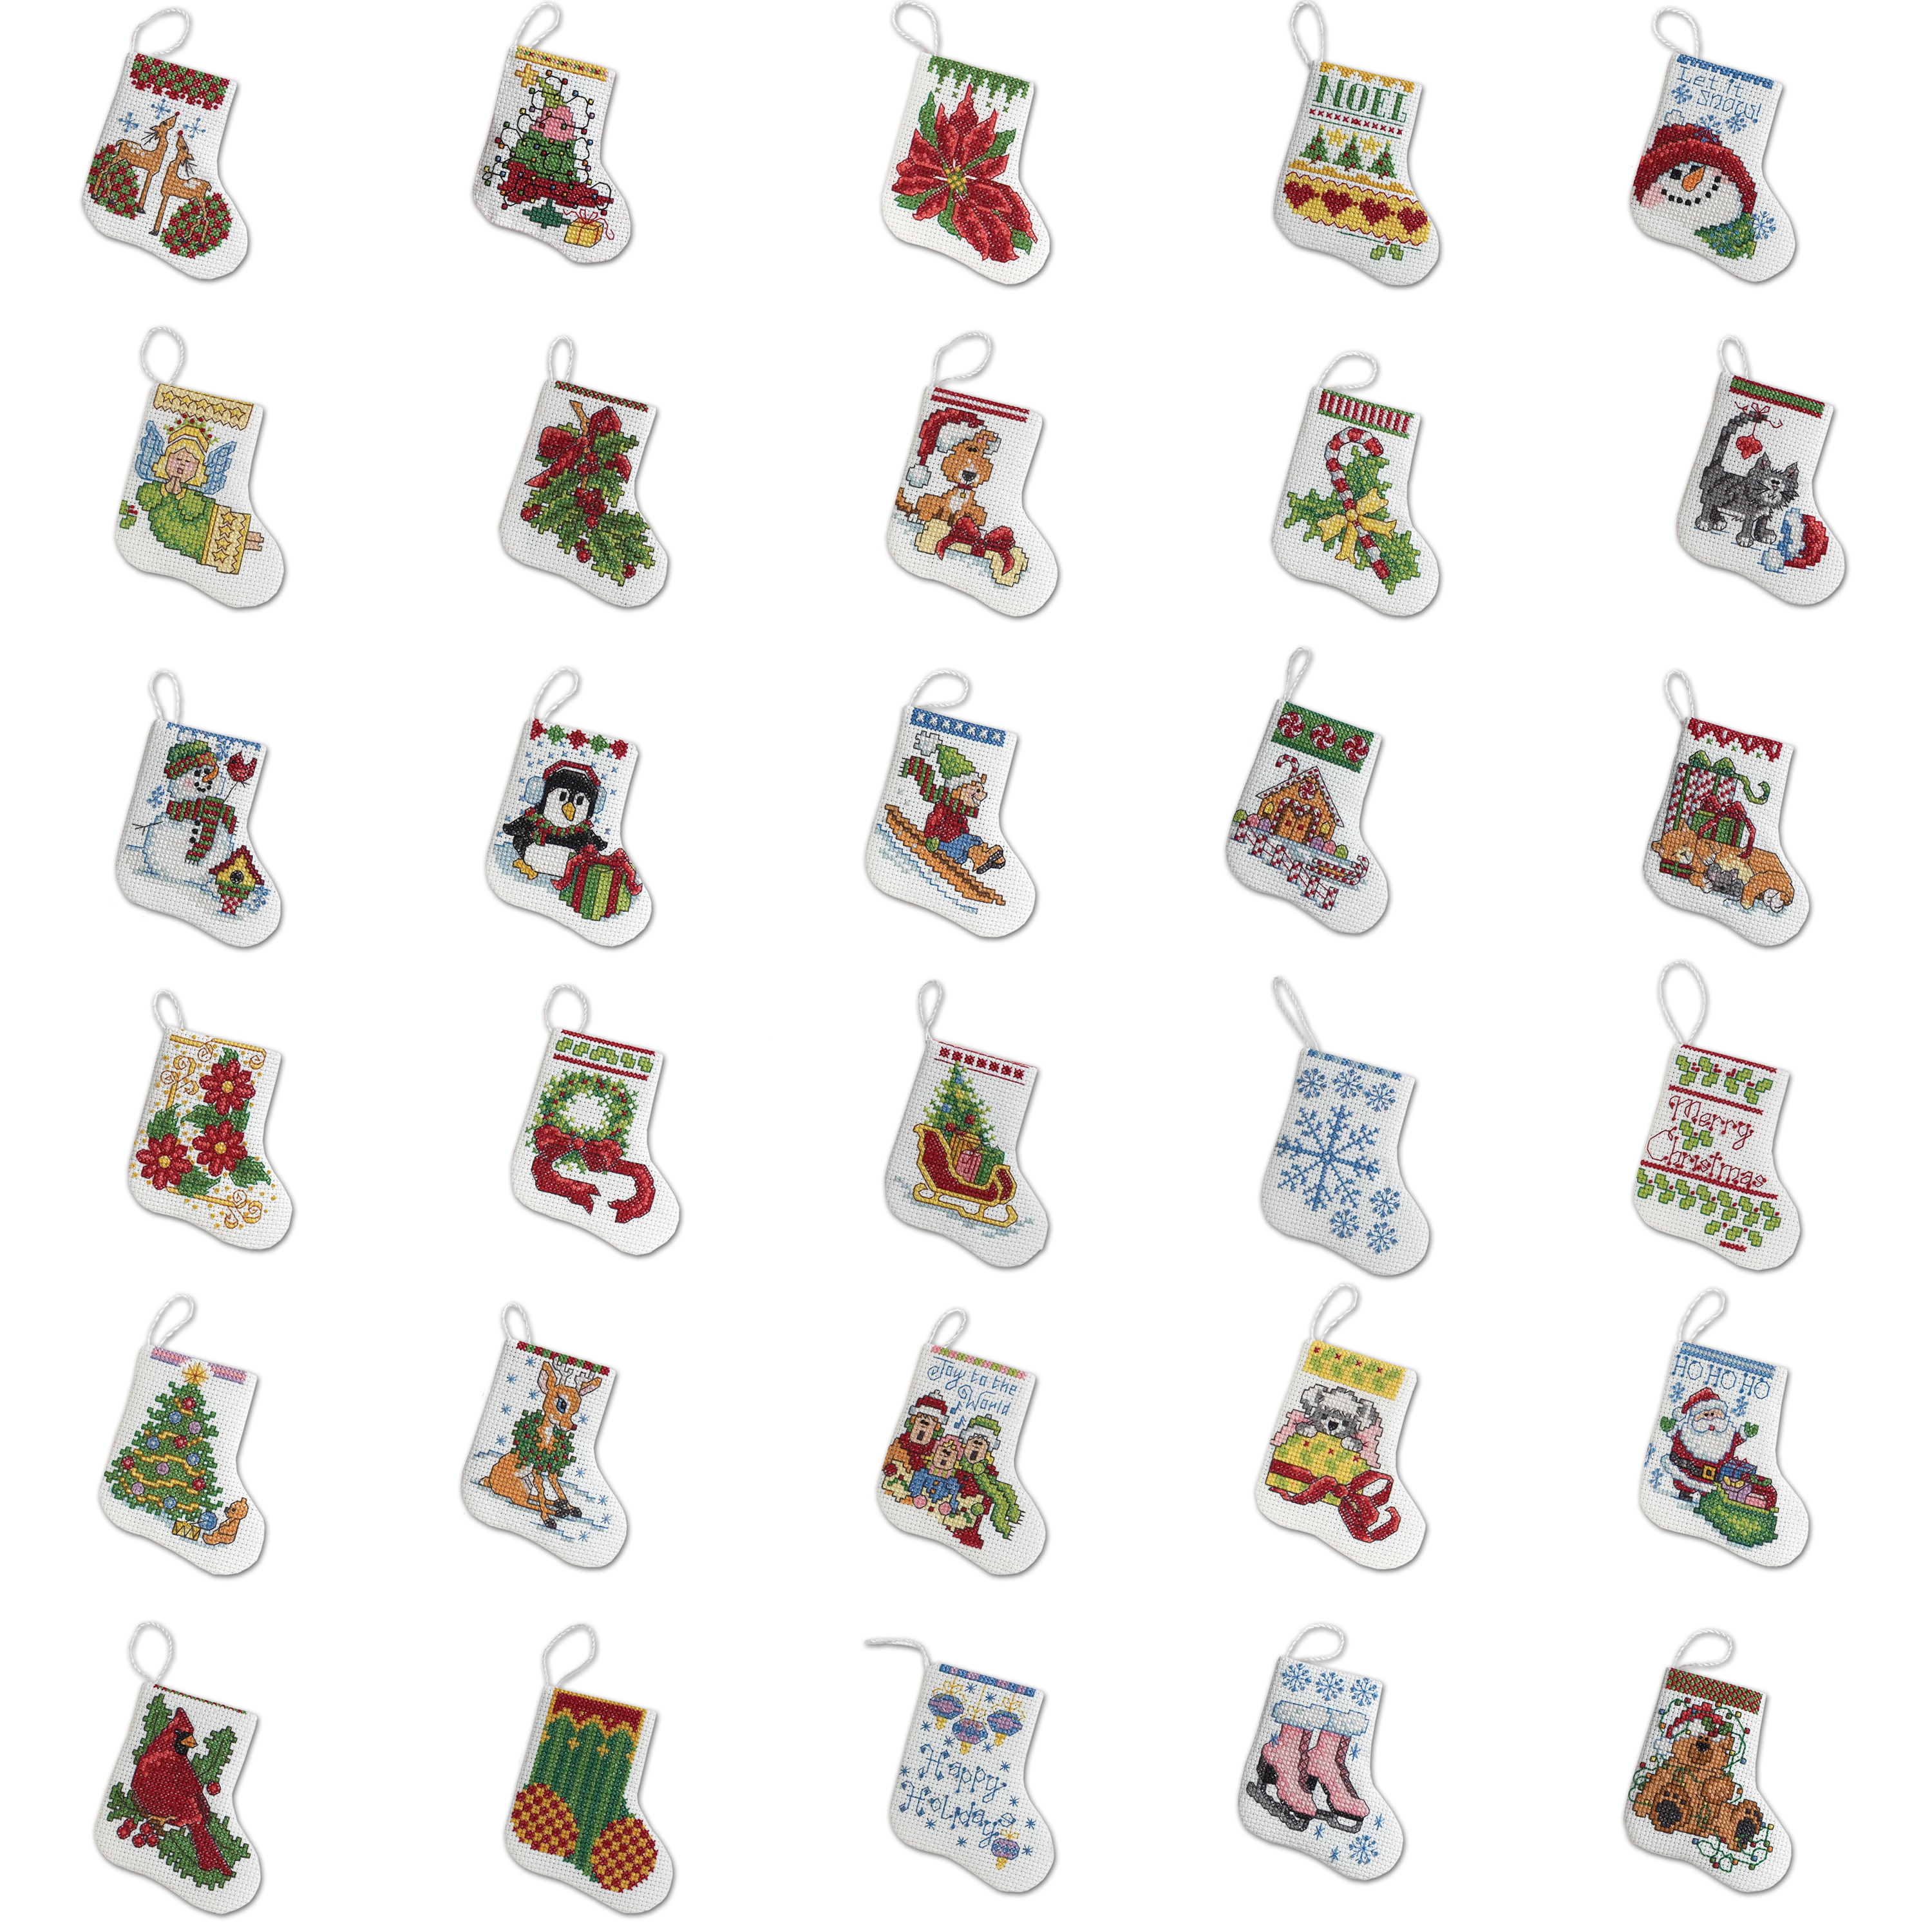 "Bucilla Counted Cross Stitch Ornament Kit by Plaid, More Tiny Stockings, Set of 30,   each approx. 2½"" x 3"""